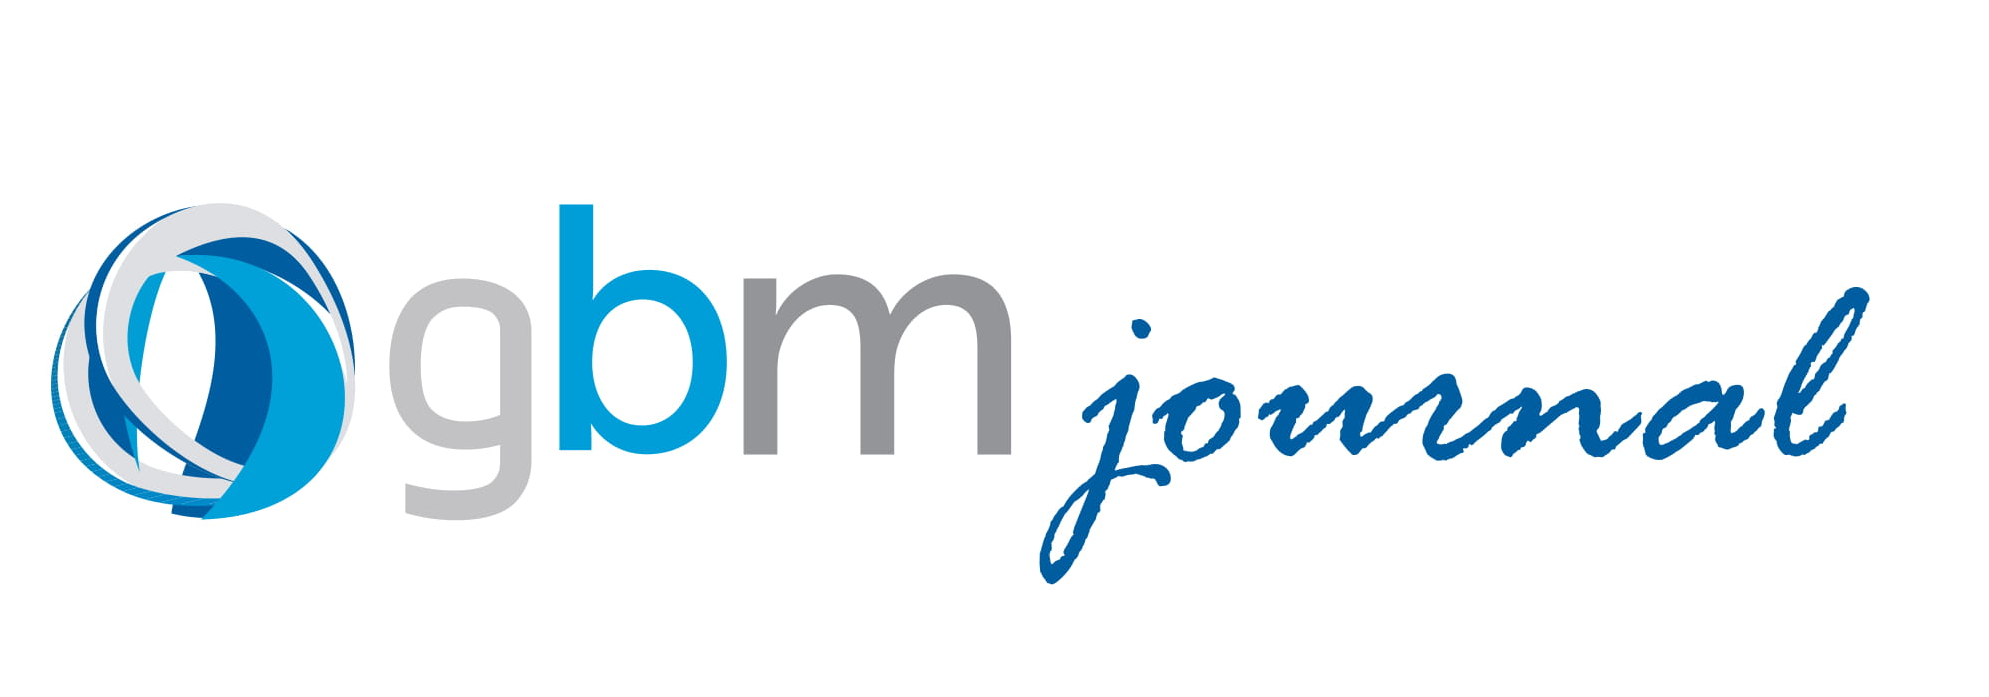 GBM Journal logo